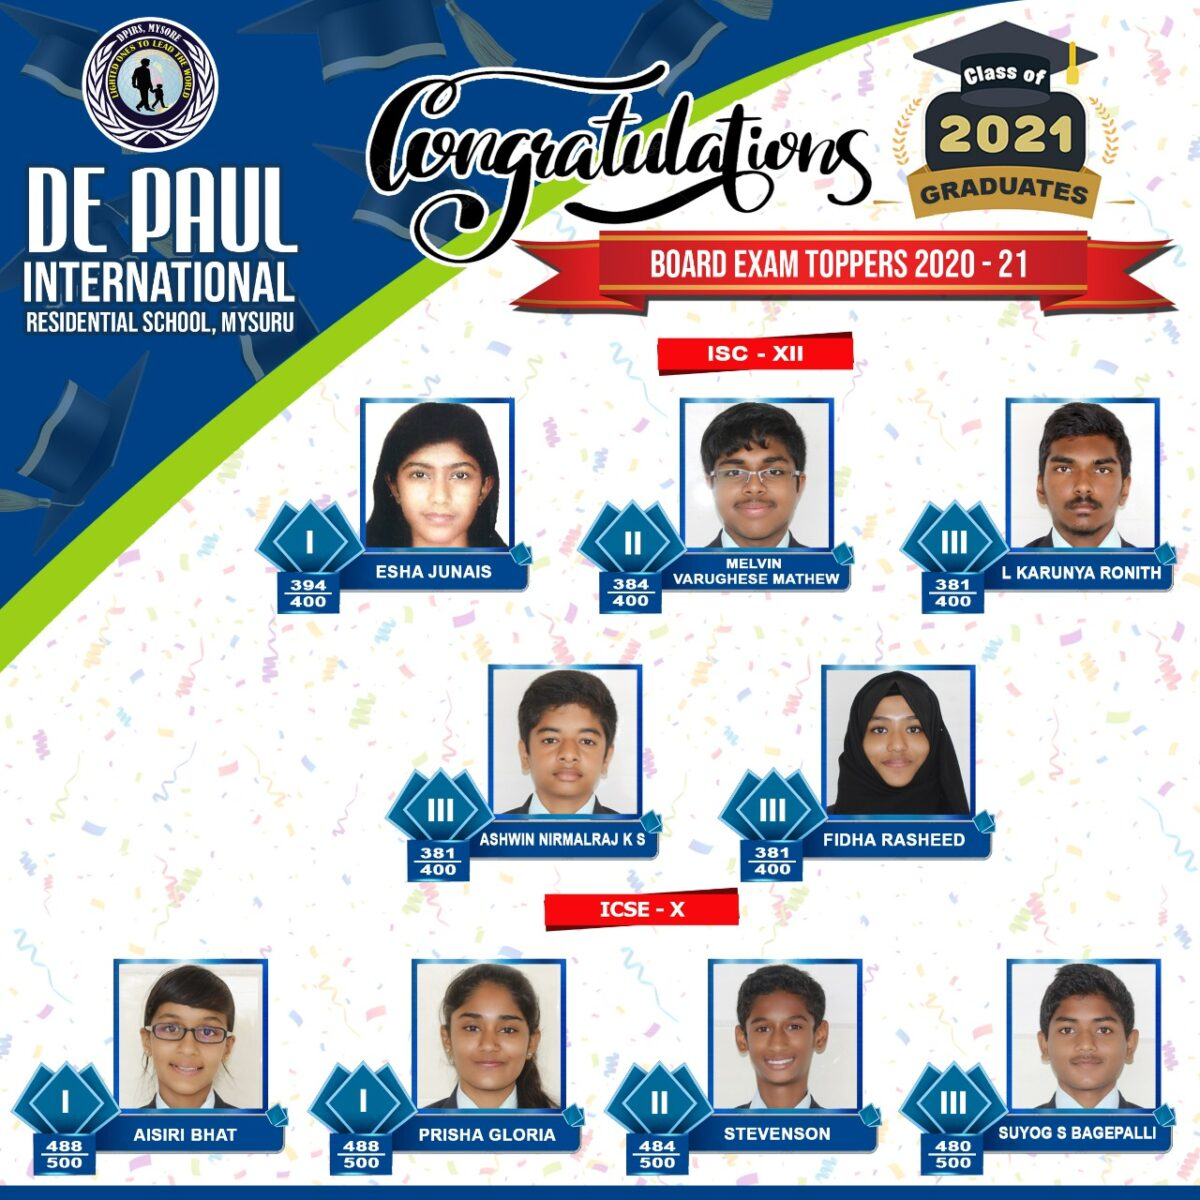 CONGRATULATIONS TO BOARD EXAM TOPPERS 2020-21